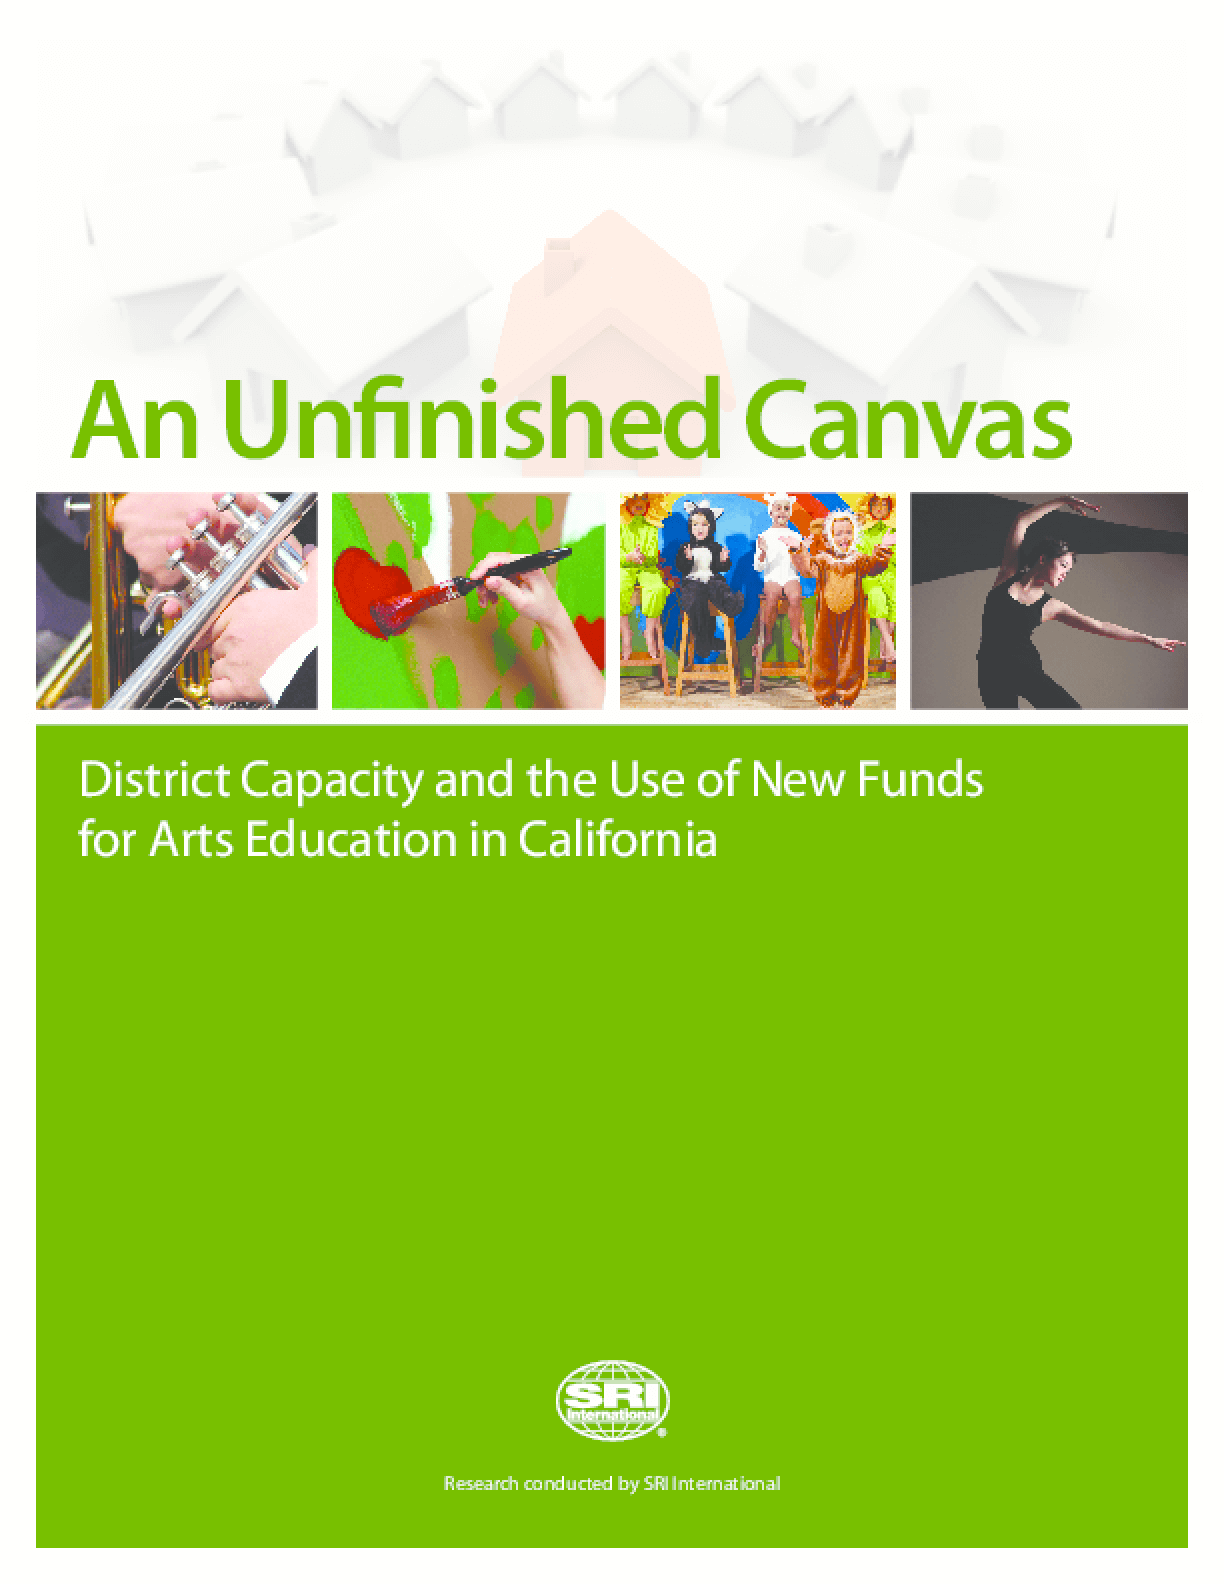 An Unfinished Canvas: District Capacity and the Use of New State Funds for Arts Education in California